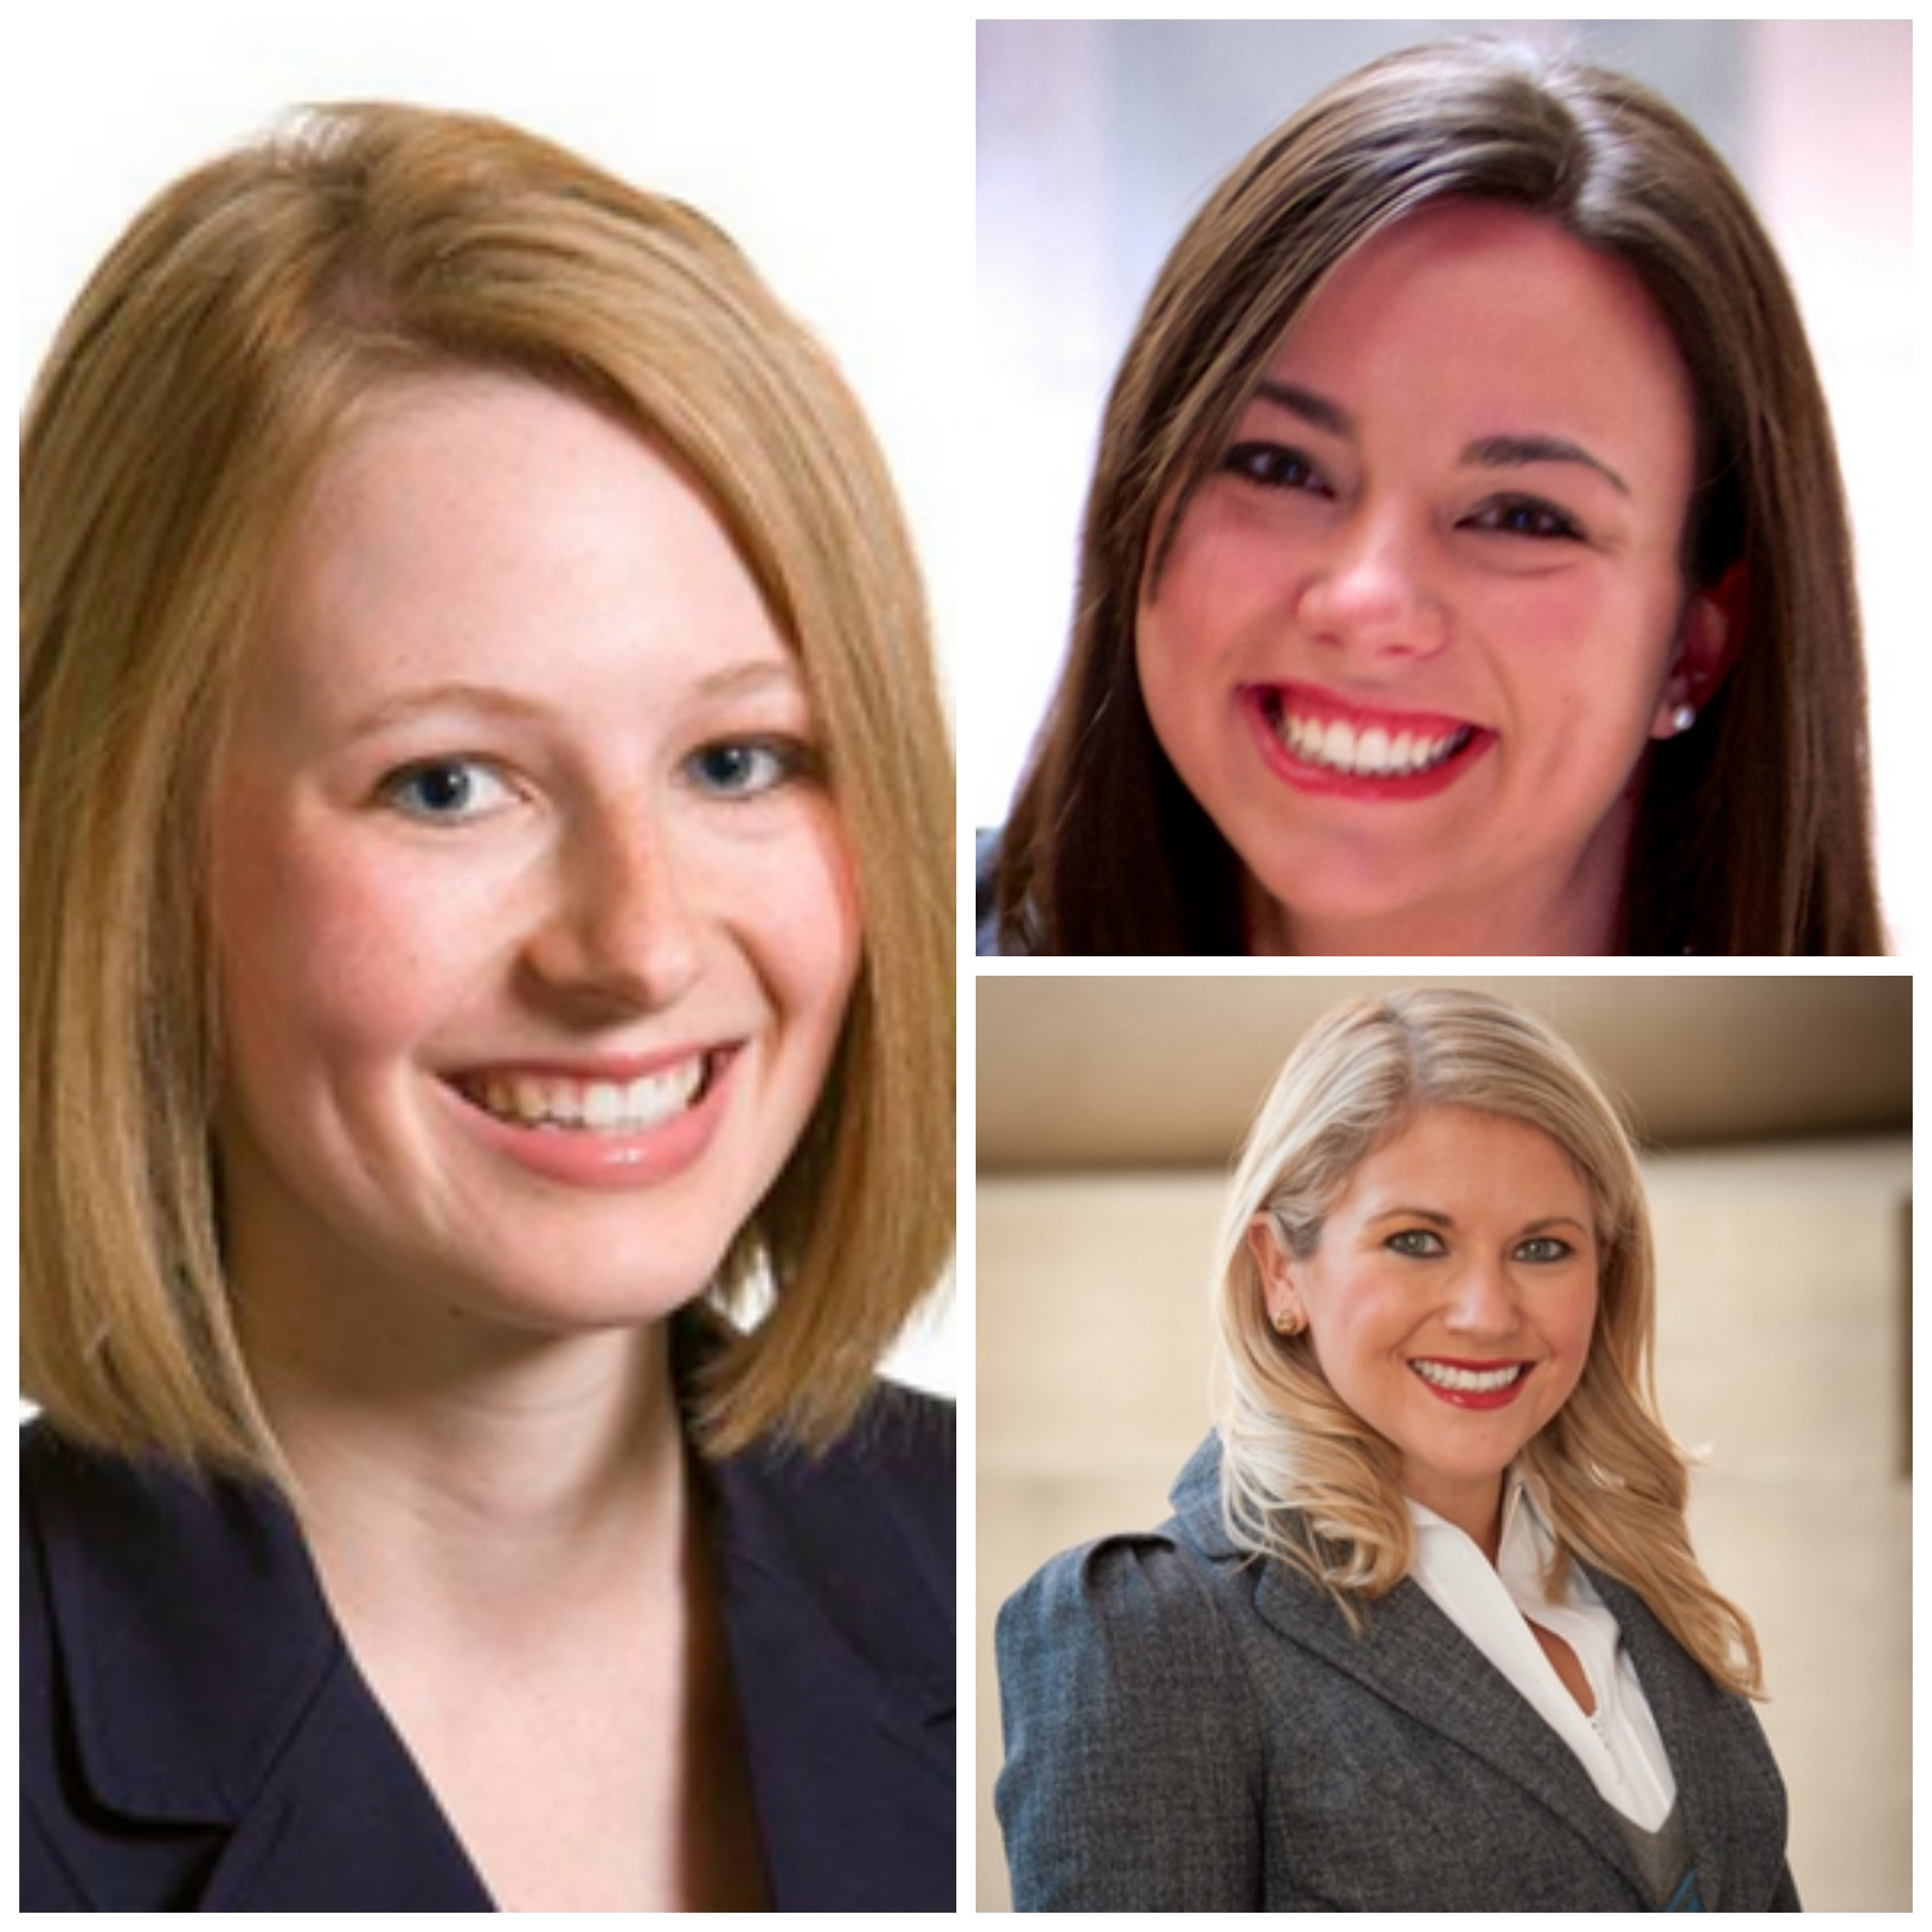 Three With Heritage Ties Earn Spots on Red Alert Politics' '30 Under 30′ List